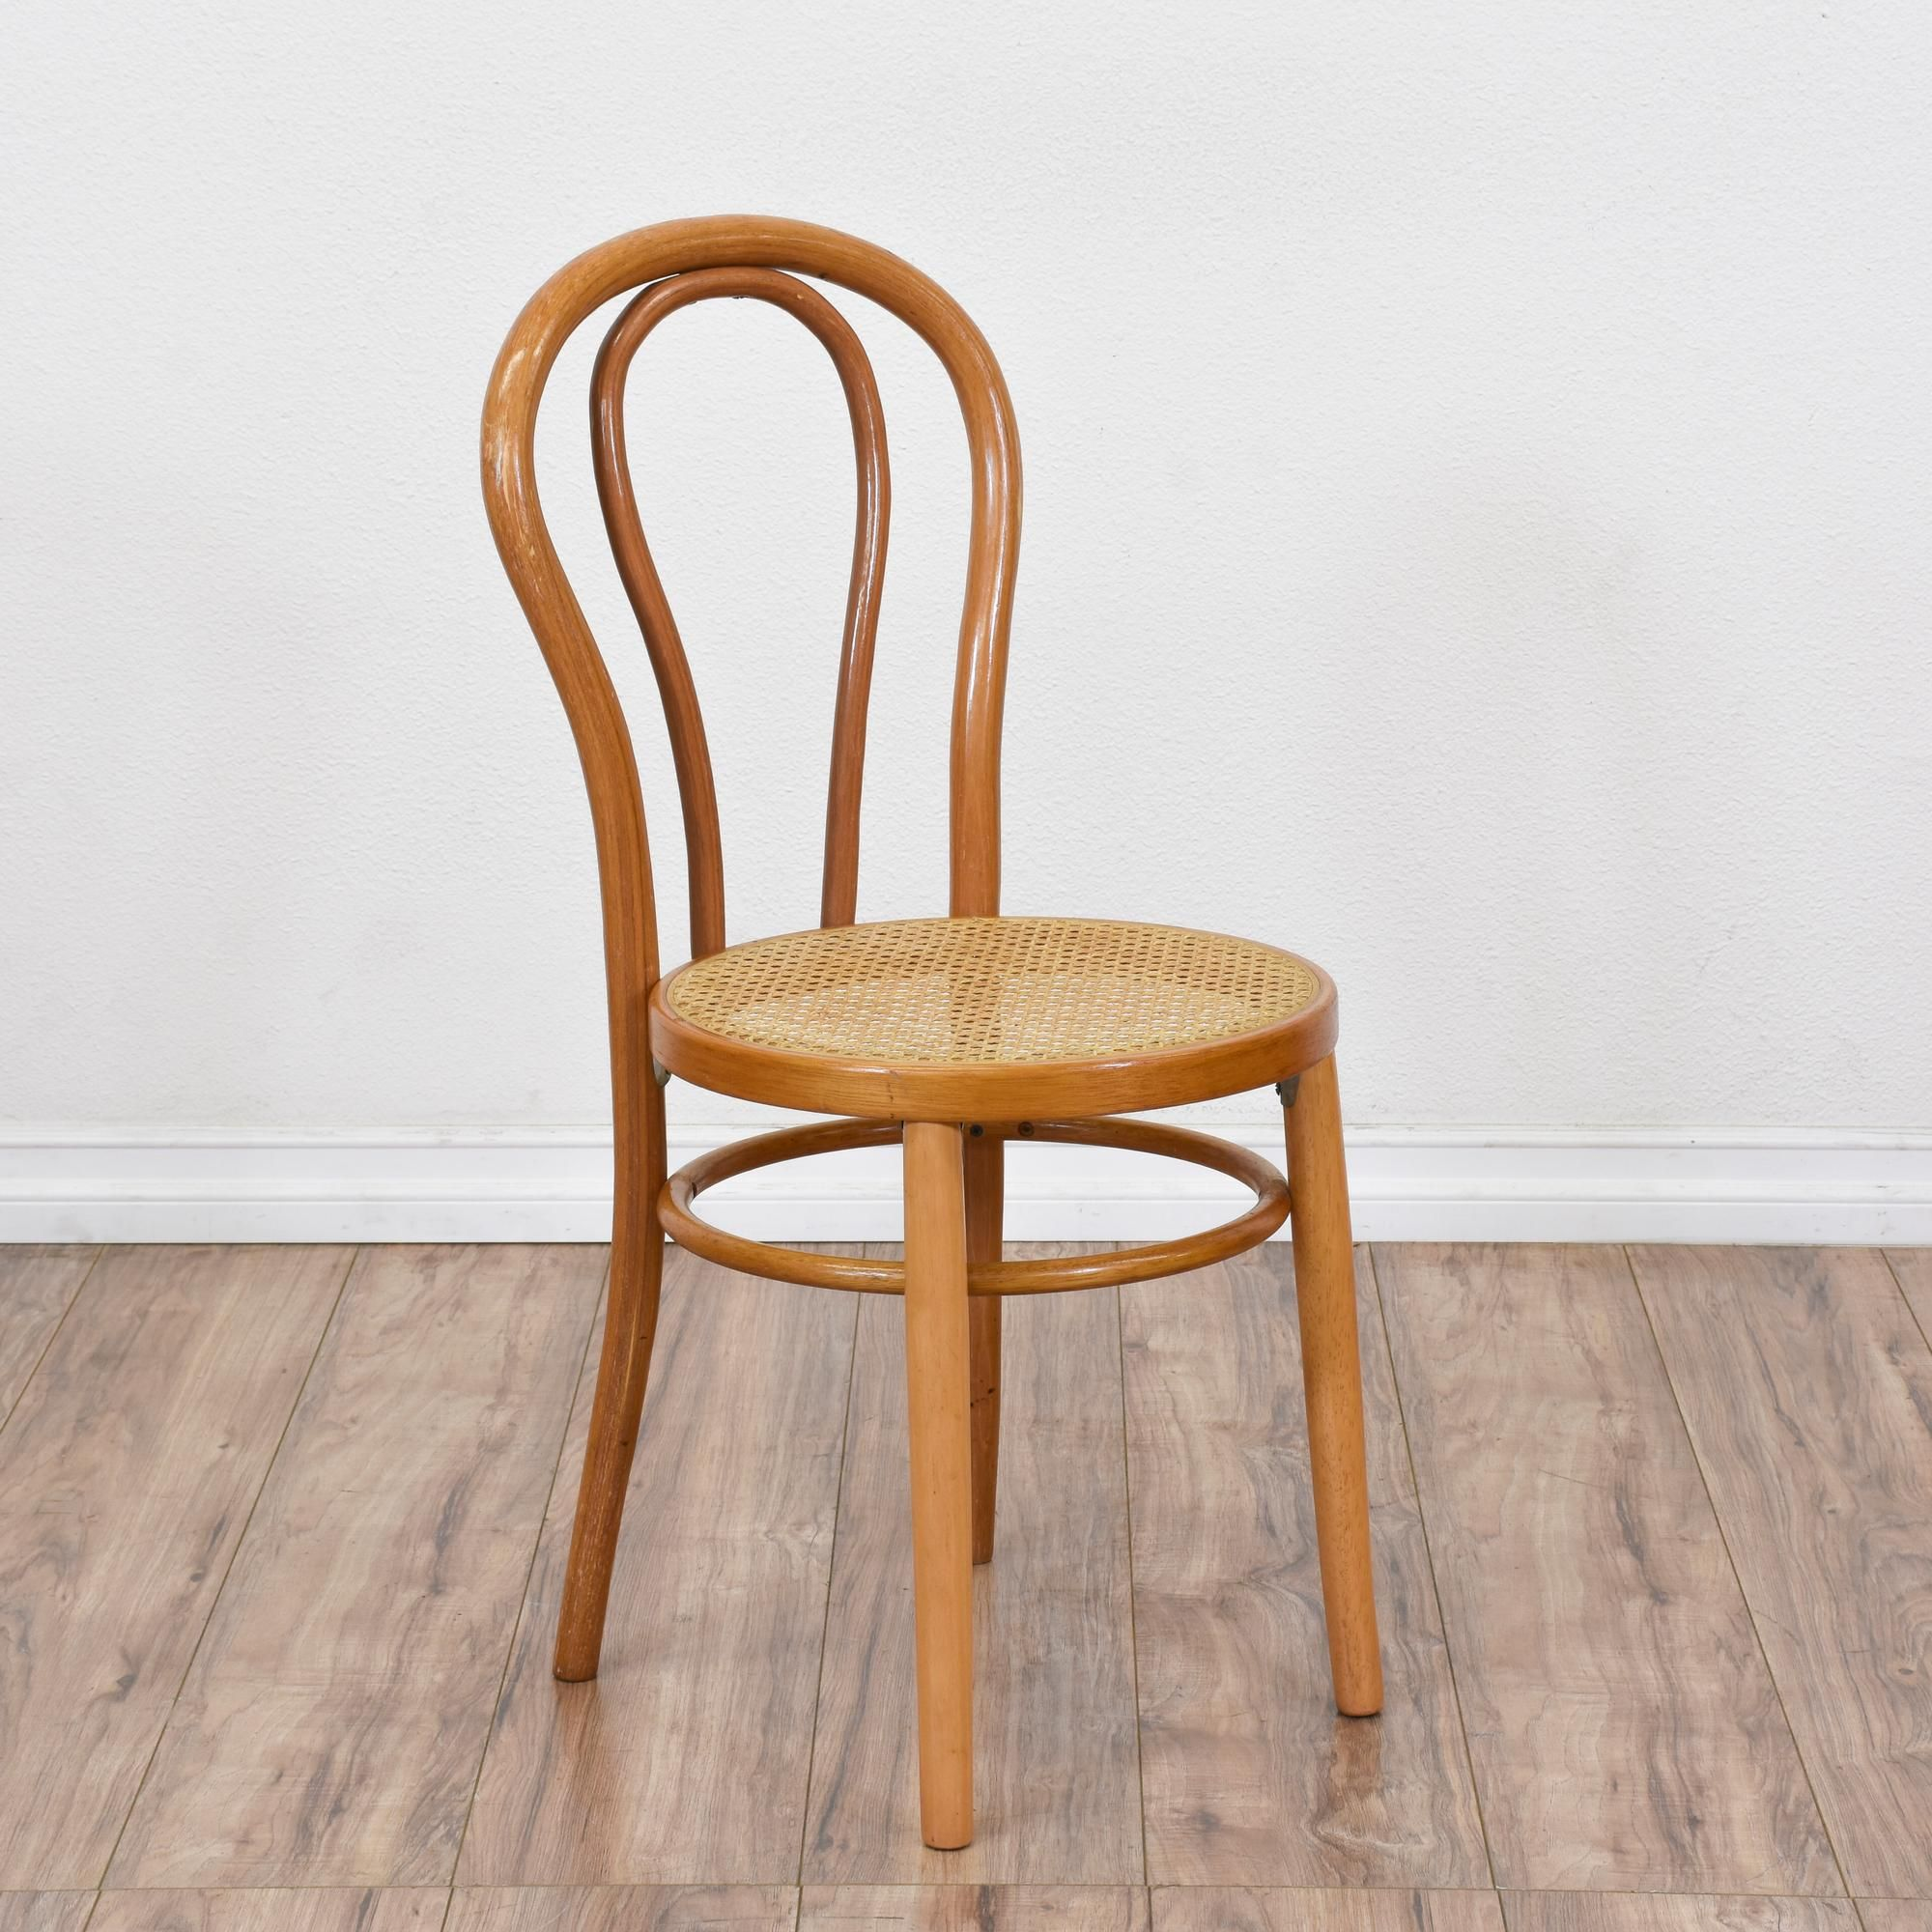 bentwood bistro chair. This Bentwood Bistro Chair Is Featured In A Wood With Glossy Light Finish. N